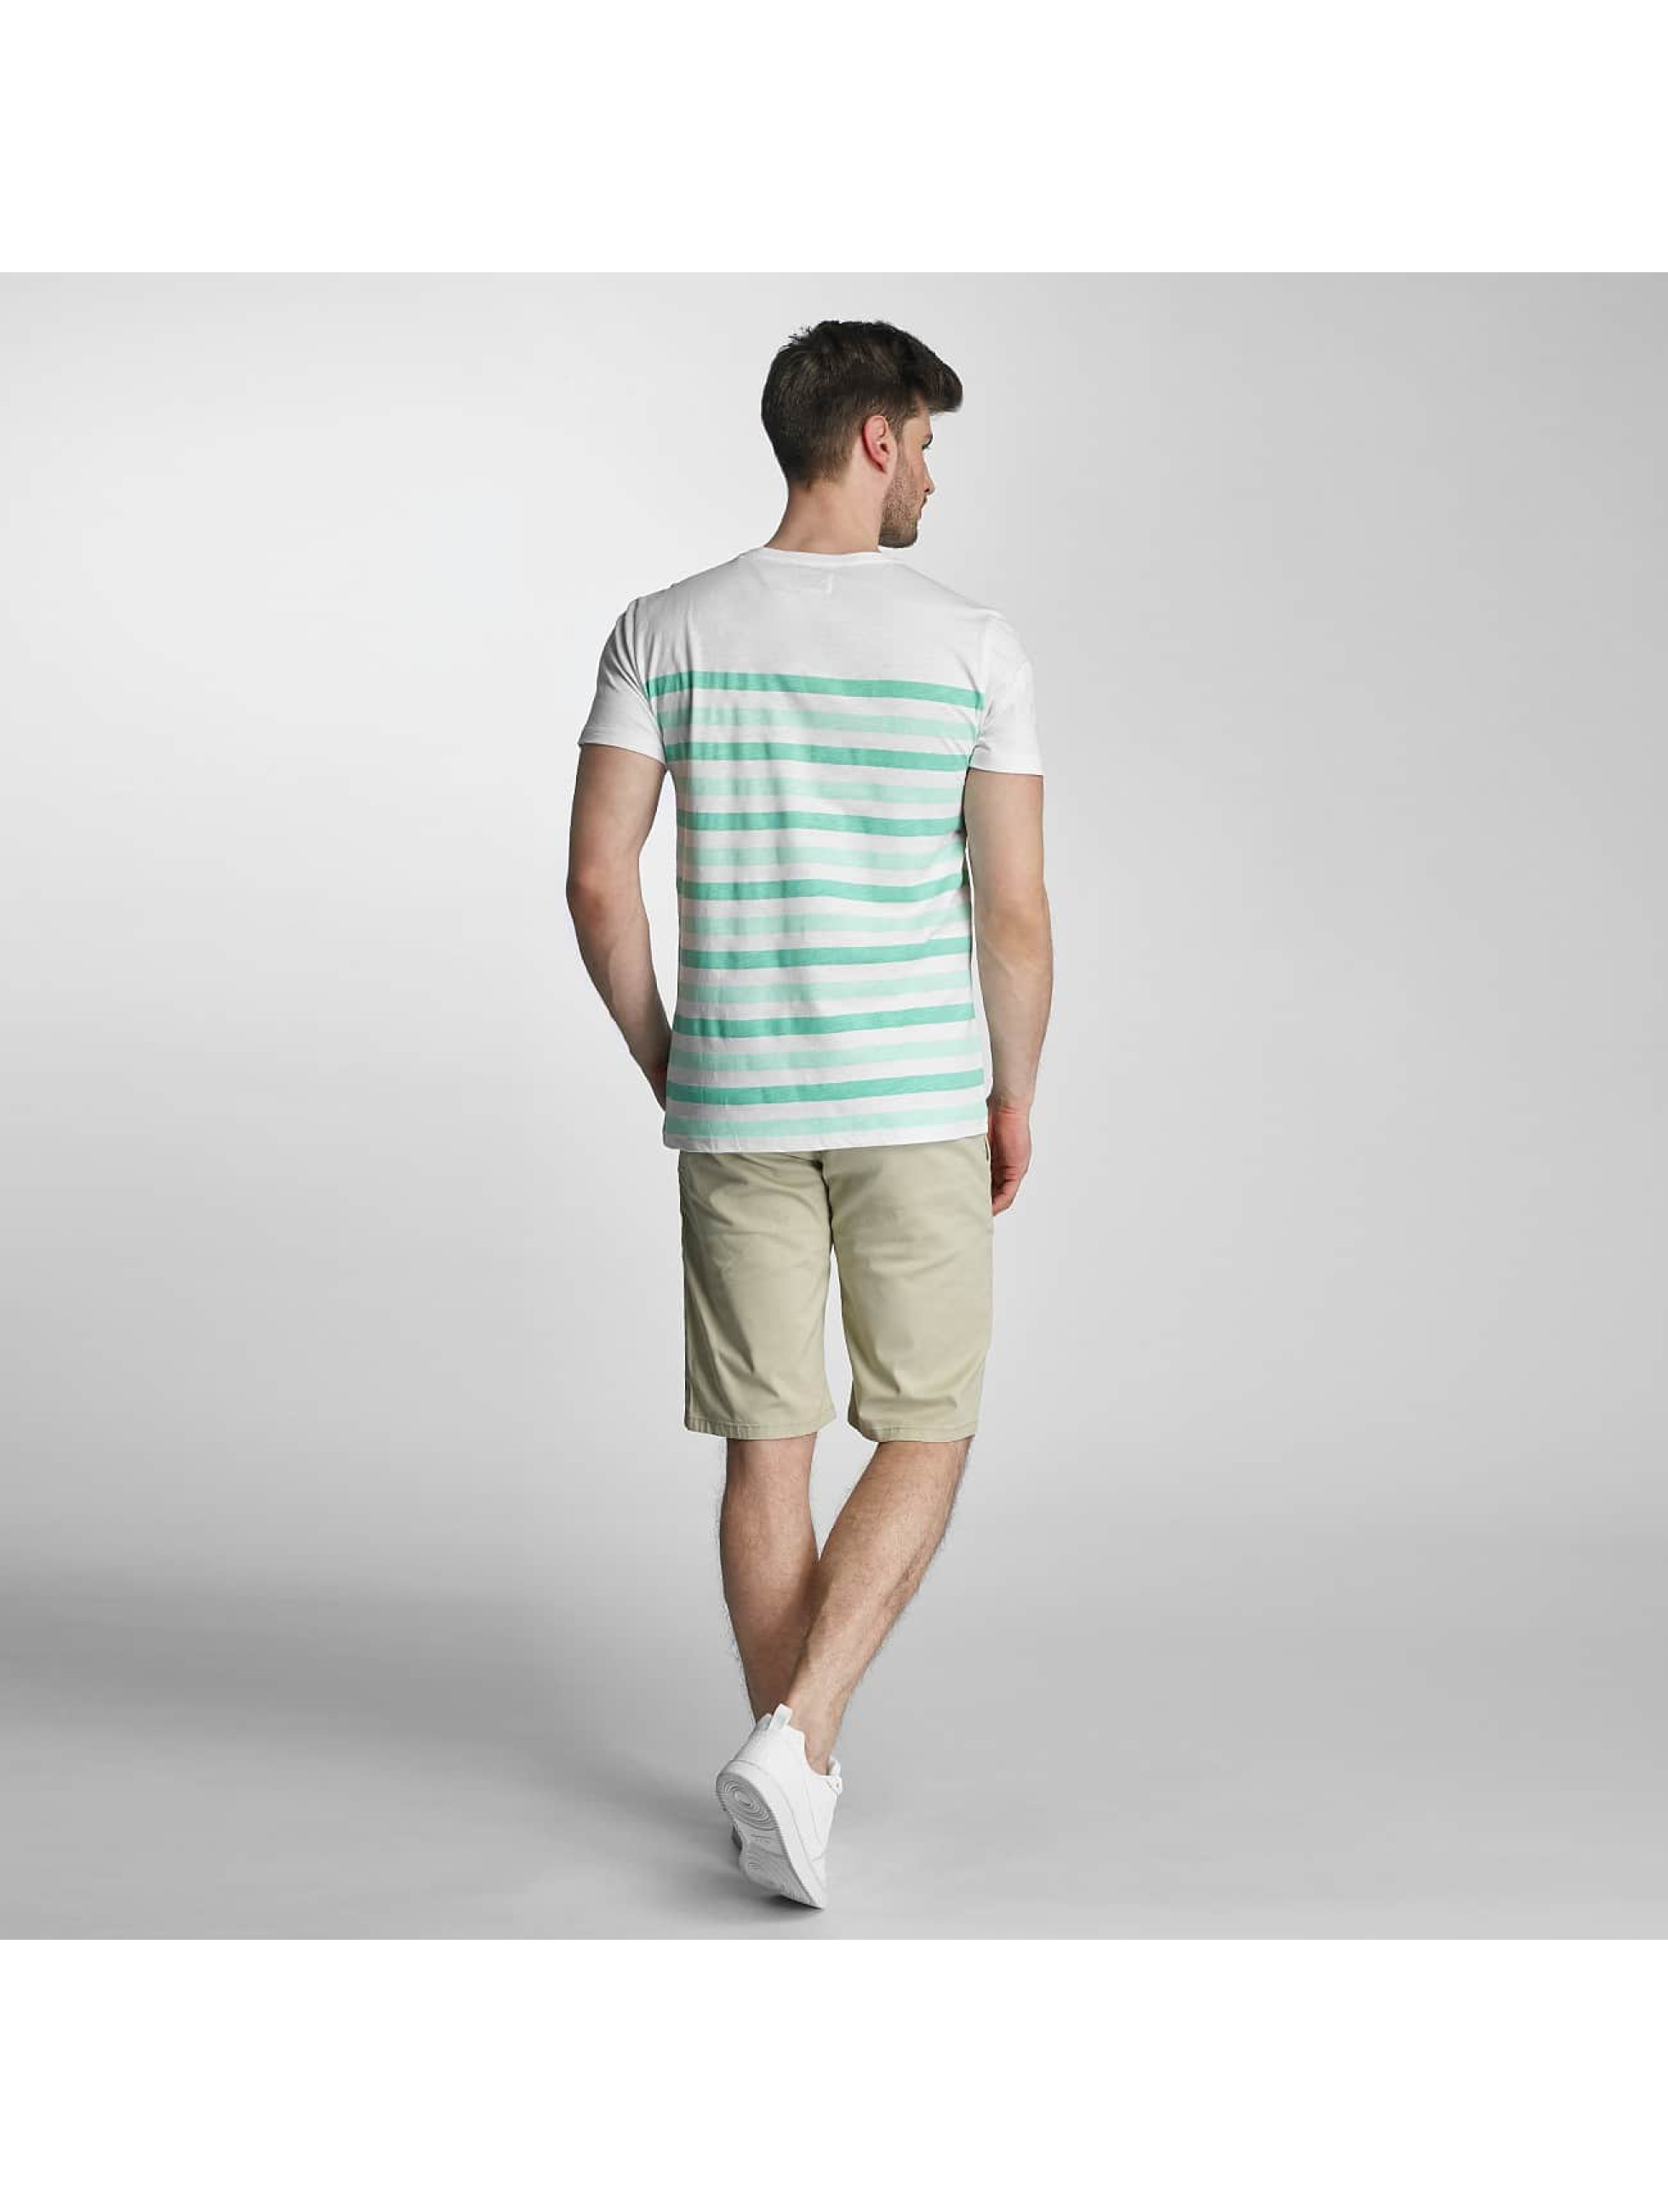 SHINE Original T-shirts Striped grøn